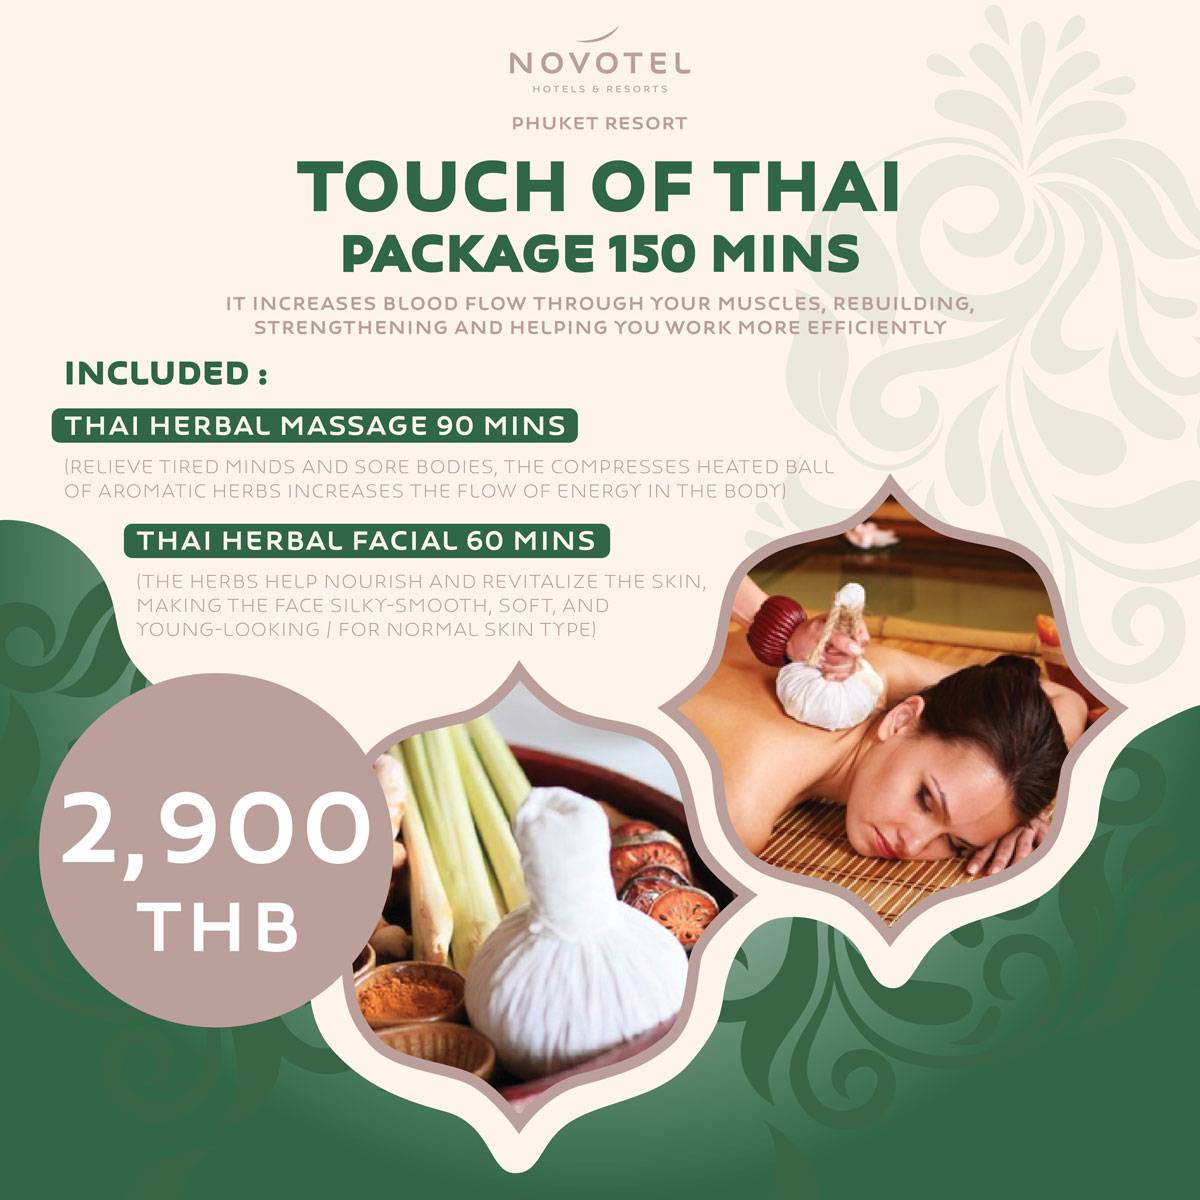 Touch of Thai Package